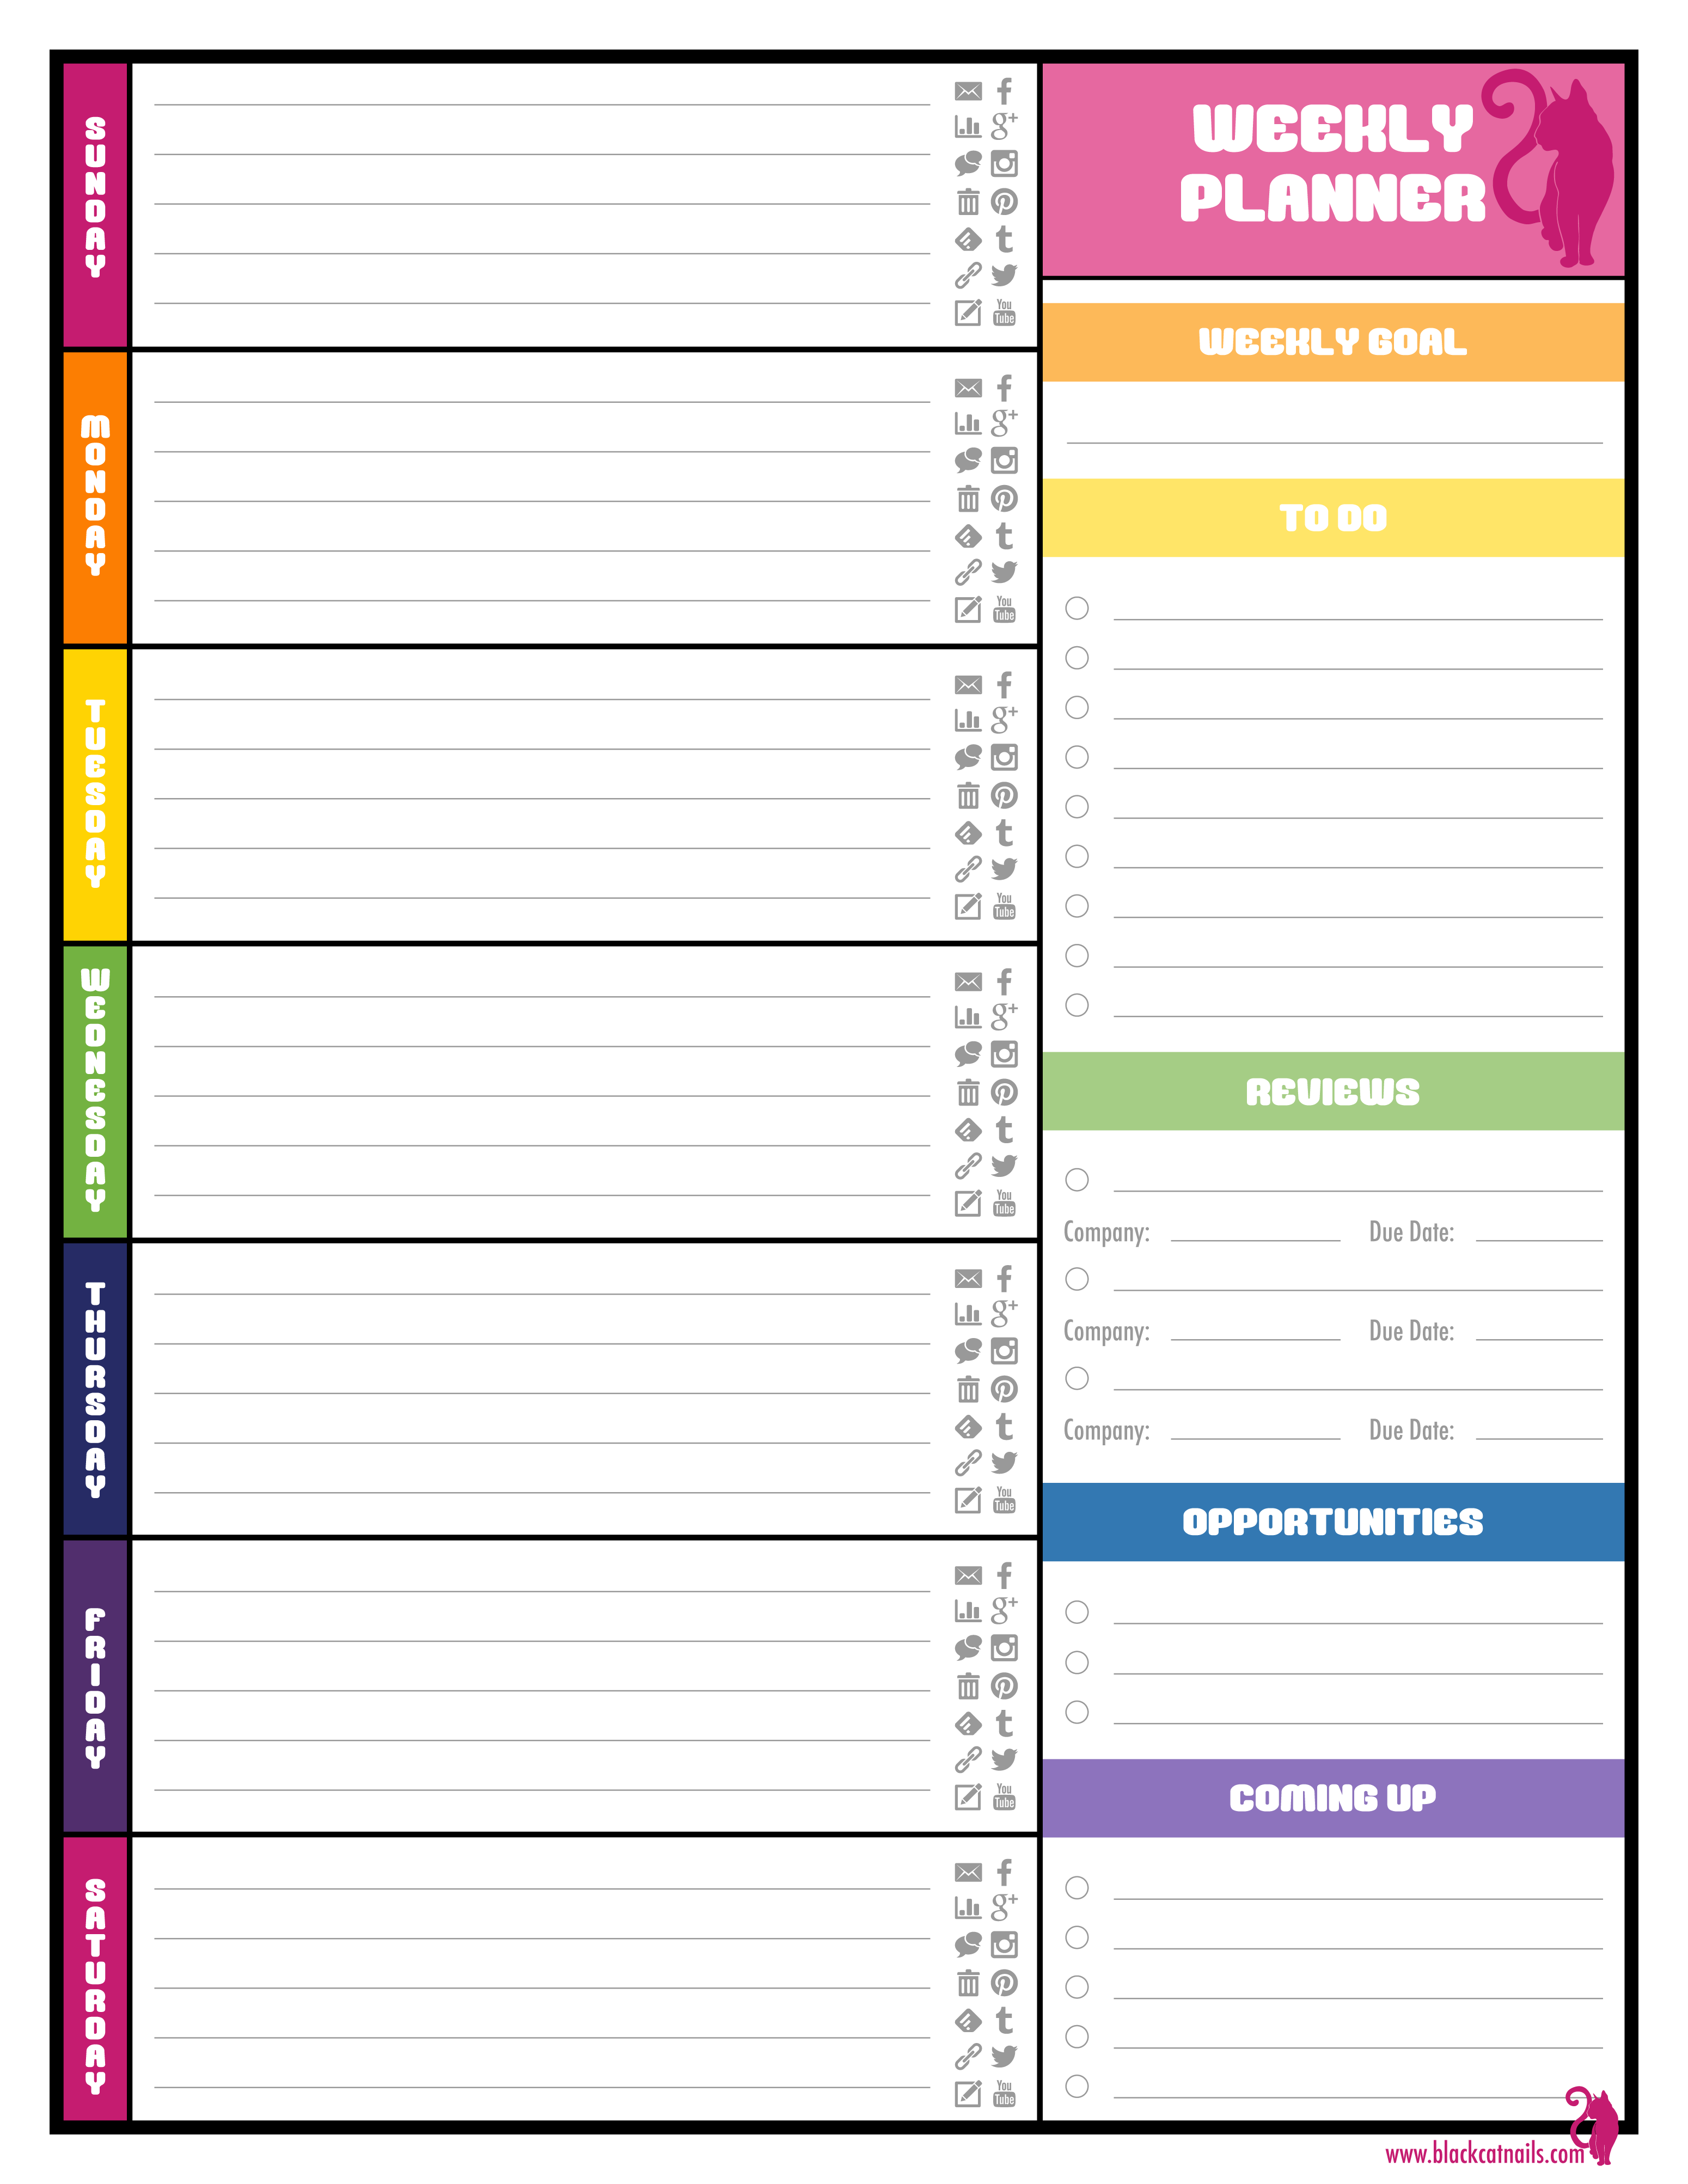 Colorful Weekly Blogging Planner Image